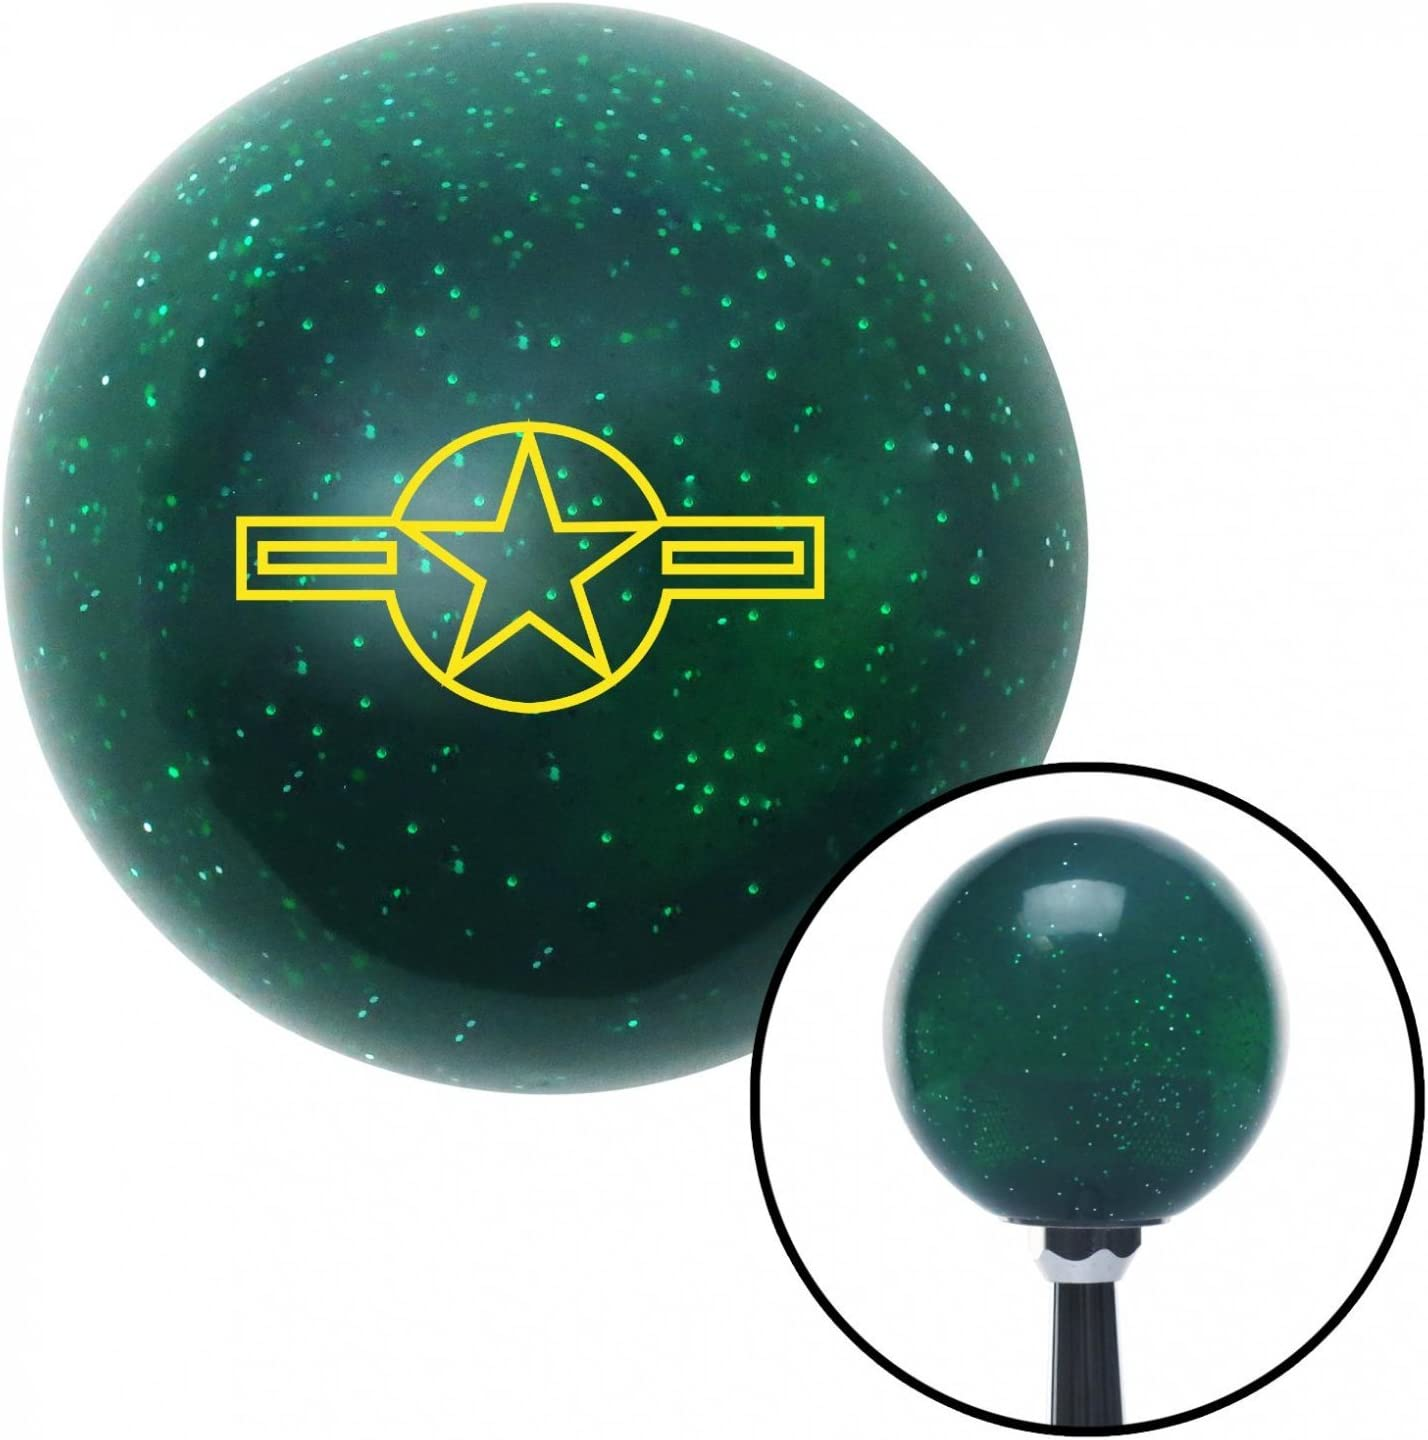 American Shifter 68415 Green Metal Flake Shift Knob with 16mm x 1.5 Insert Yellow US Air Force Star